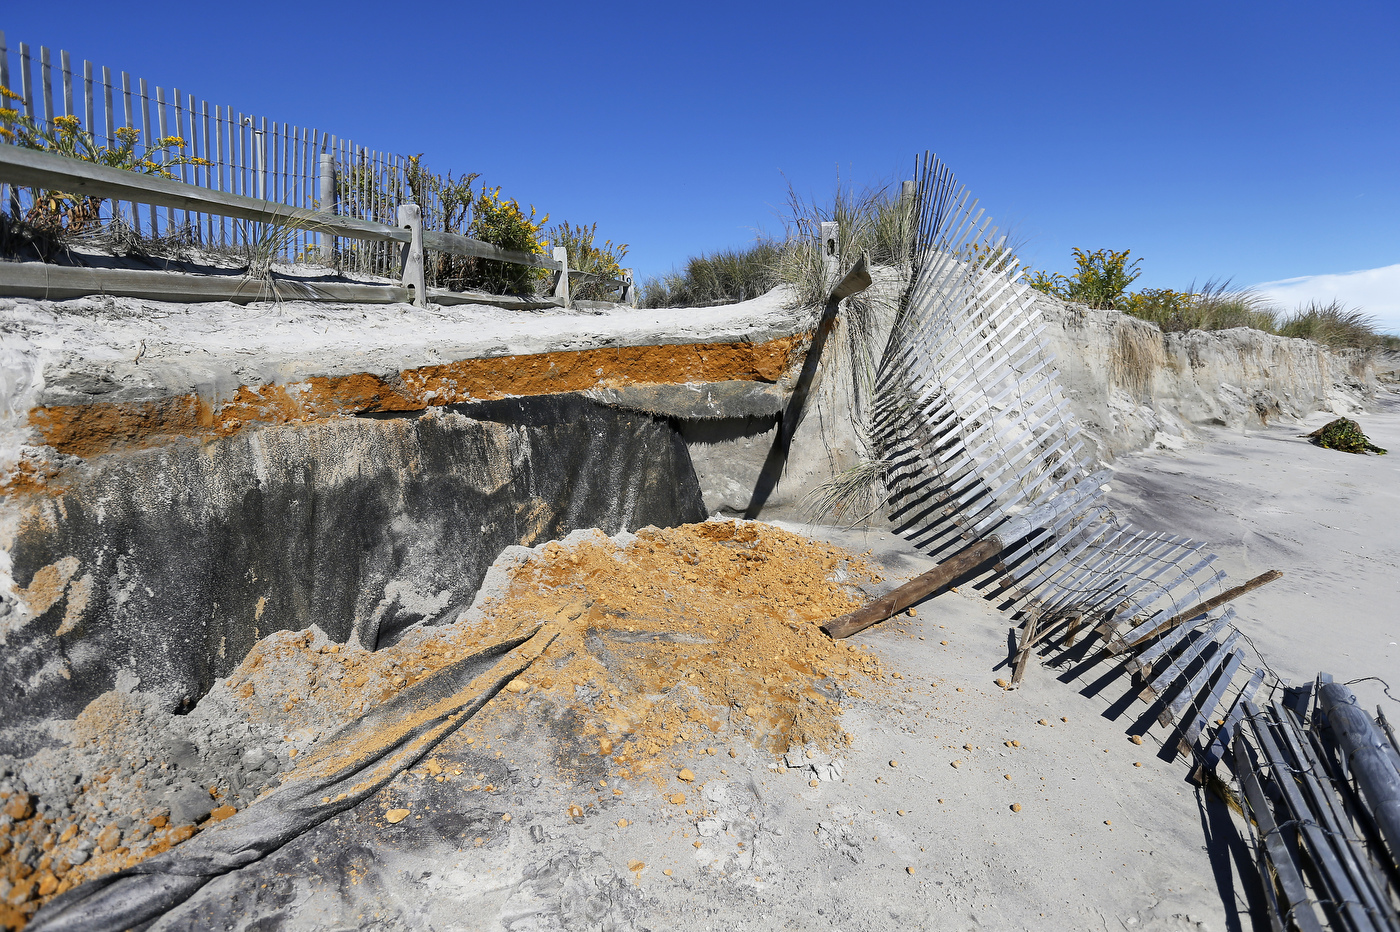 Sinkholes appear on Jersey Shore beach after erosion from storm (VIDEO)